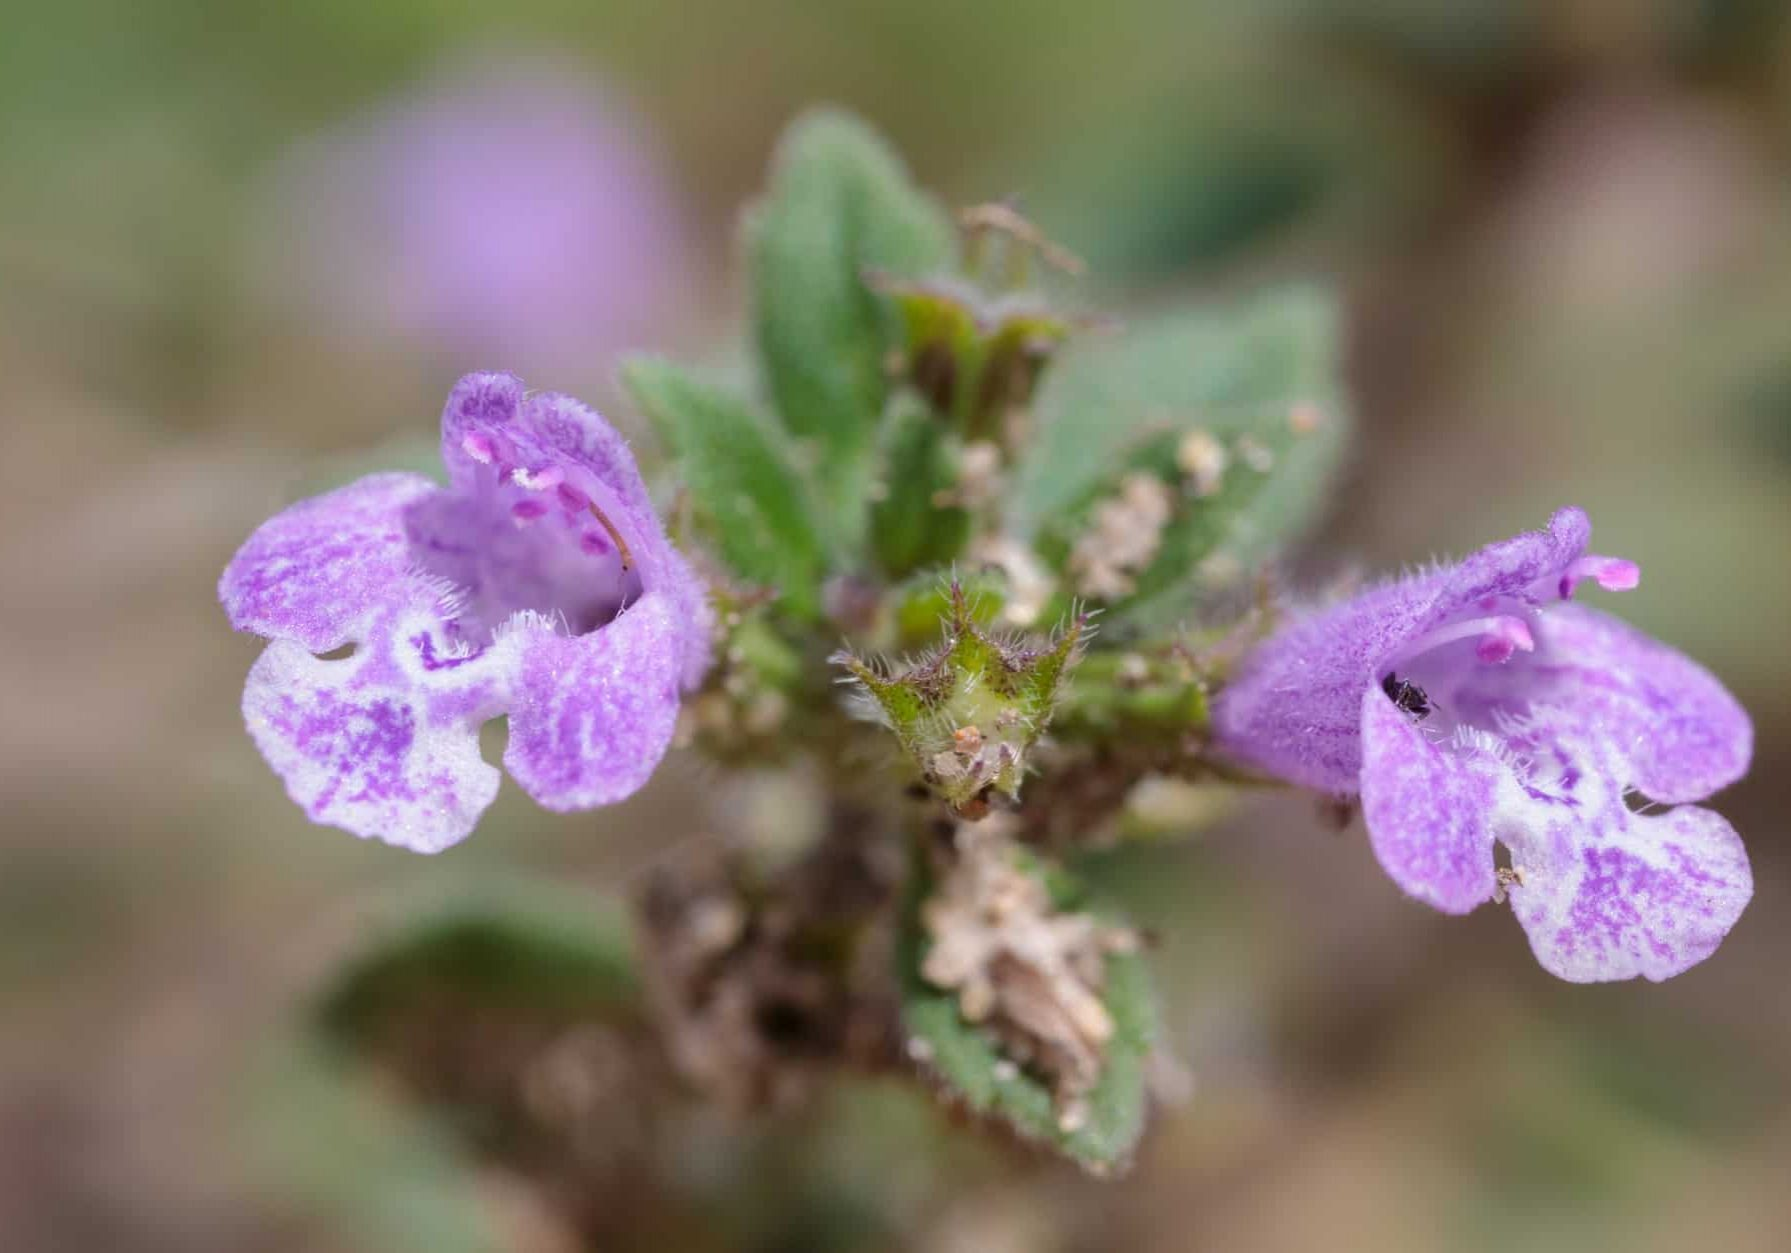 Basil Thyme (Clinopodium acinos). Back from the Brink 'Shifting Sands' project, Suffolk, UK. July.